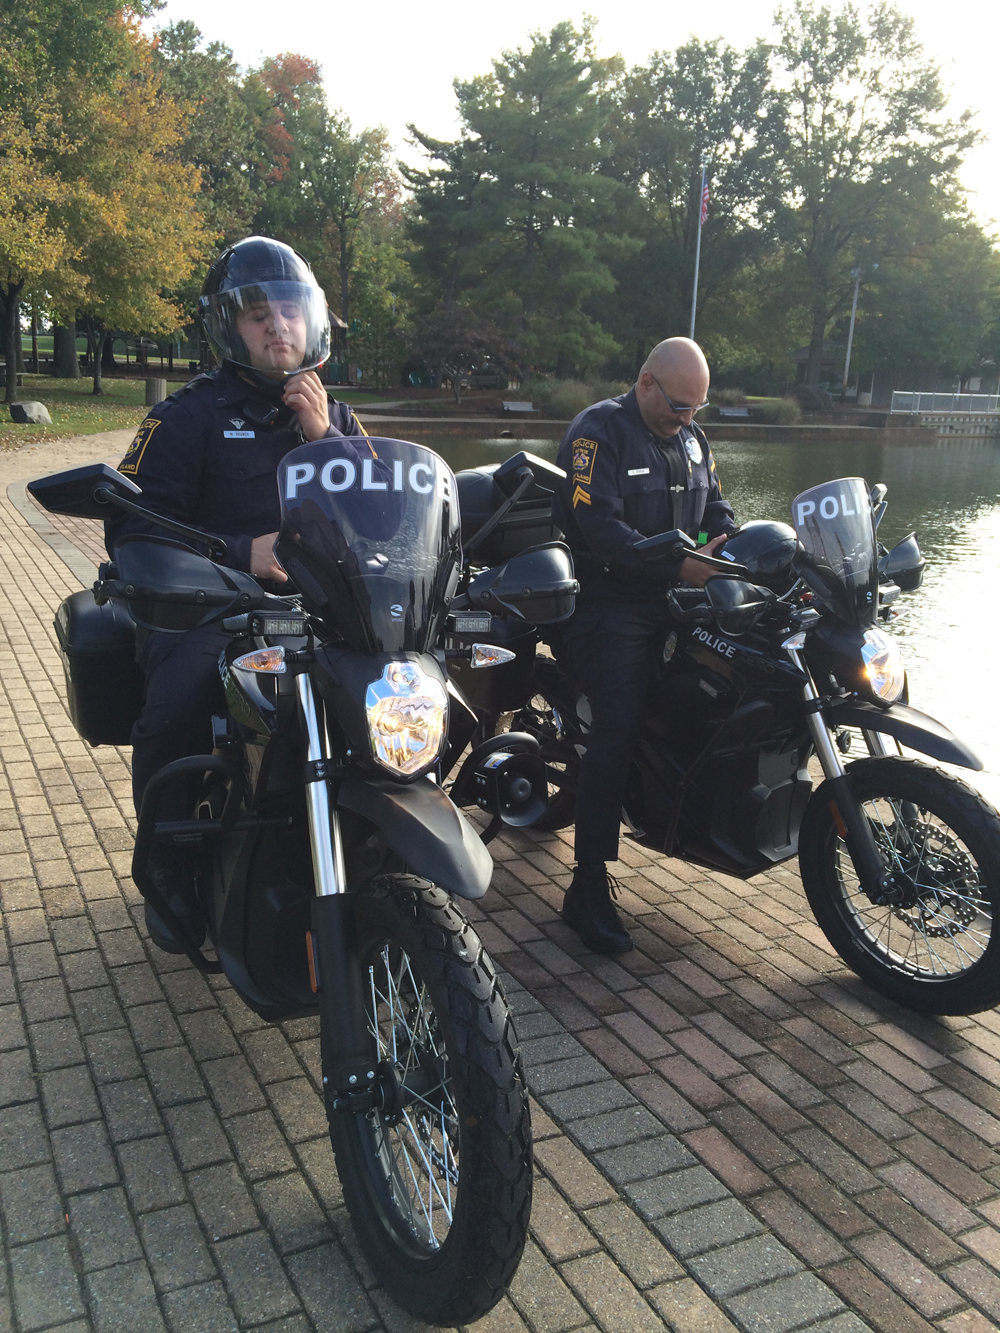 Md. police dept. adds nearly silent motorbikes to fleet